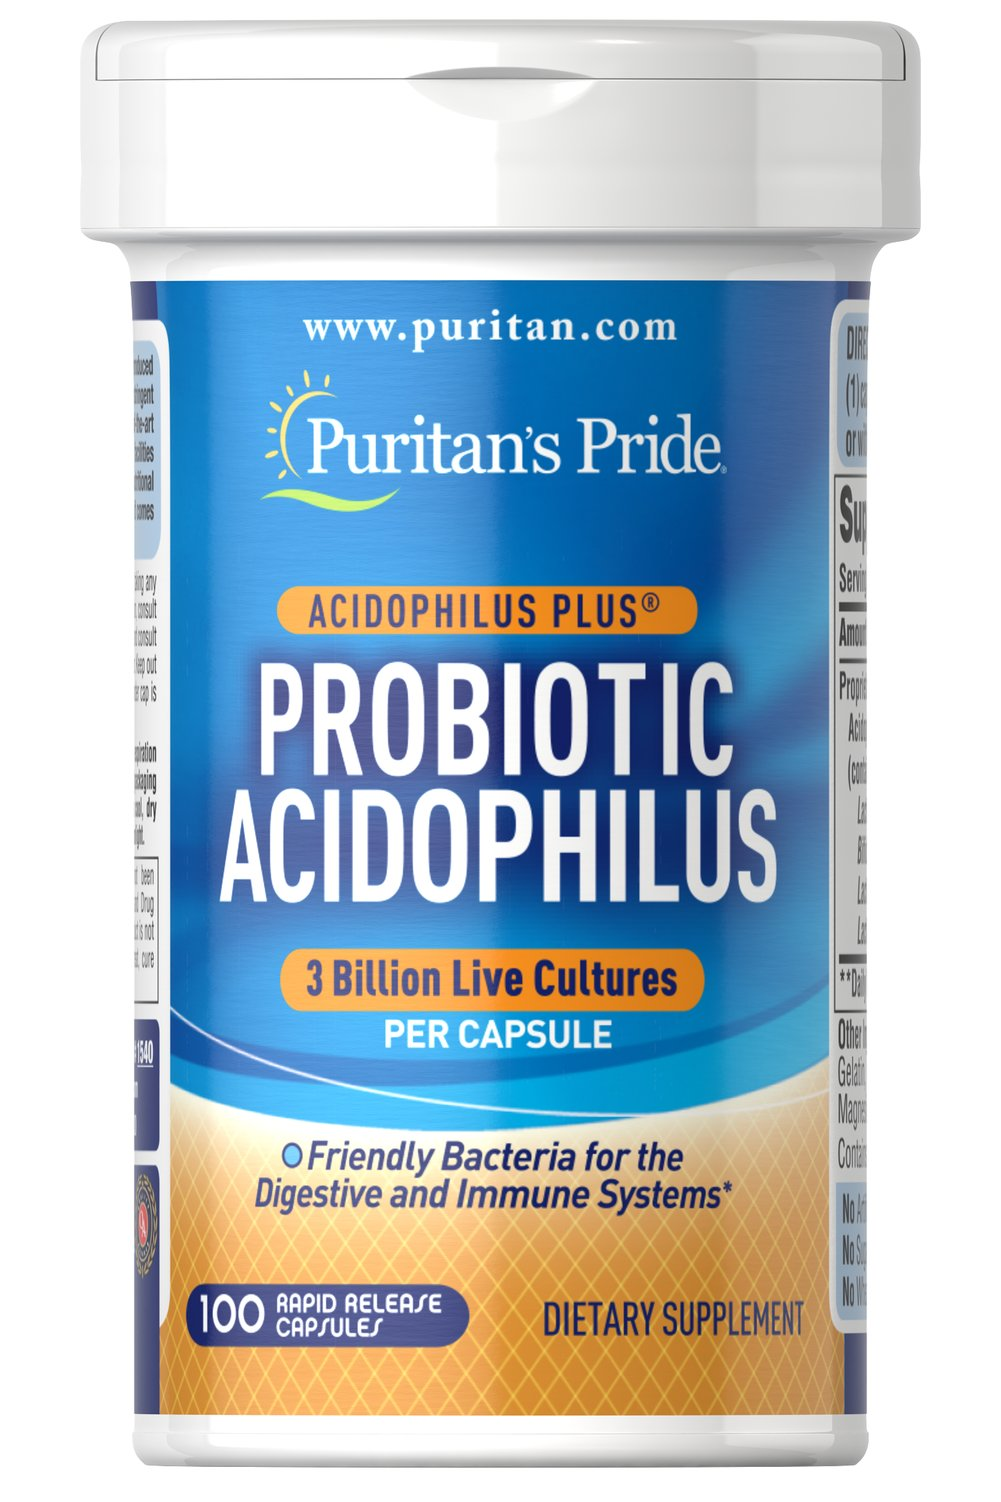 Probiotic Acidophilus with Pectin <p><strong>Supports intestinal health for the optimal absorption of nutrients**</strong></p><p>Guaranteed to provide three billion live cells per capsule at the time of manufacture.</p><p>Includes Acidophilus to support favorable environment for nutrients.</p><p>Encourages intestinal microflora balance**</p><p>Promotes healthy functioning of intestinal system.**</p> 100 Capsules 3 billion $4